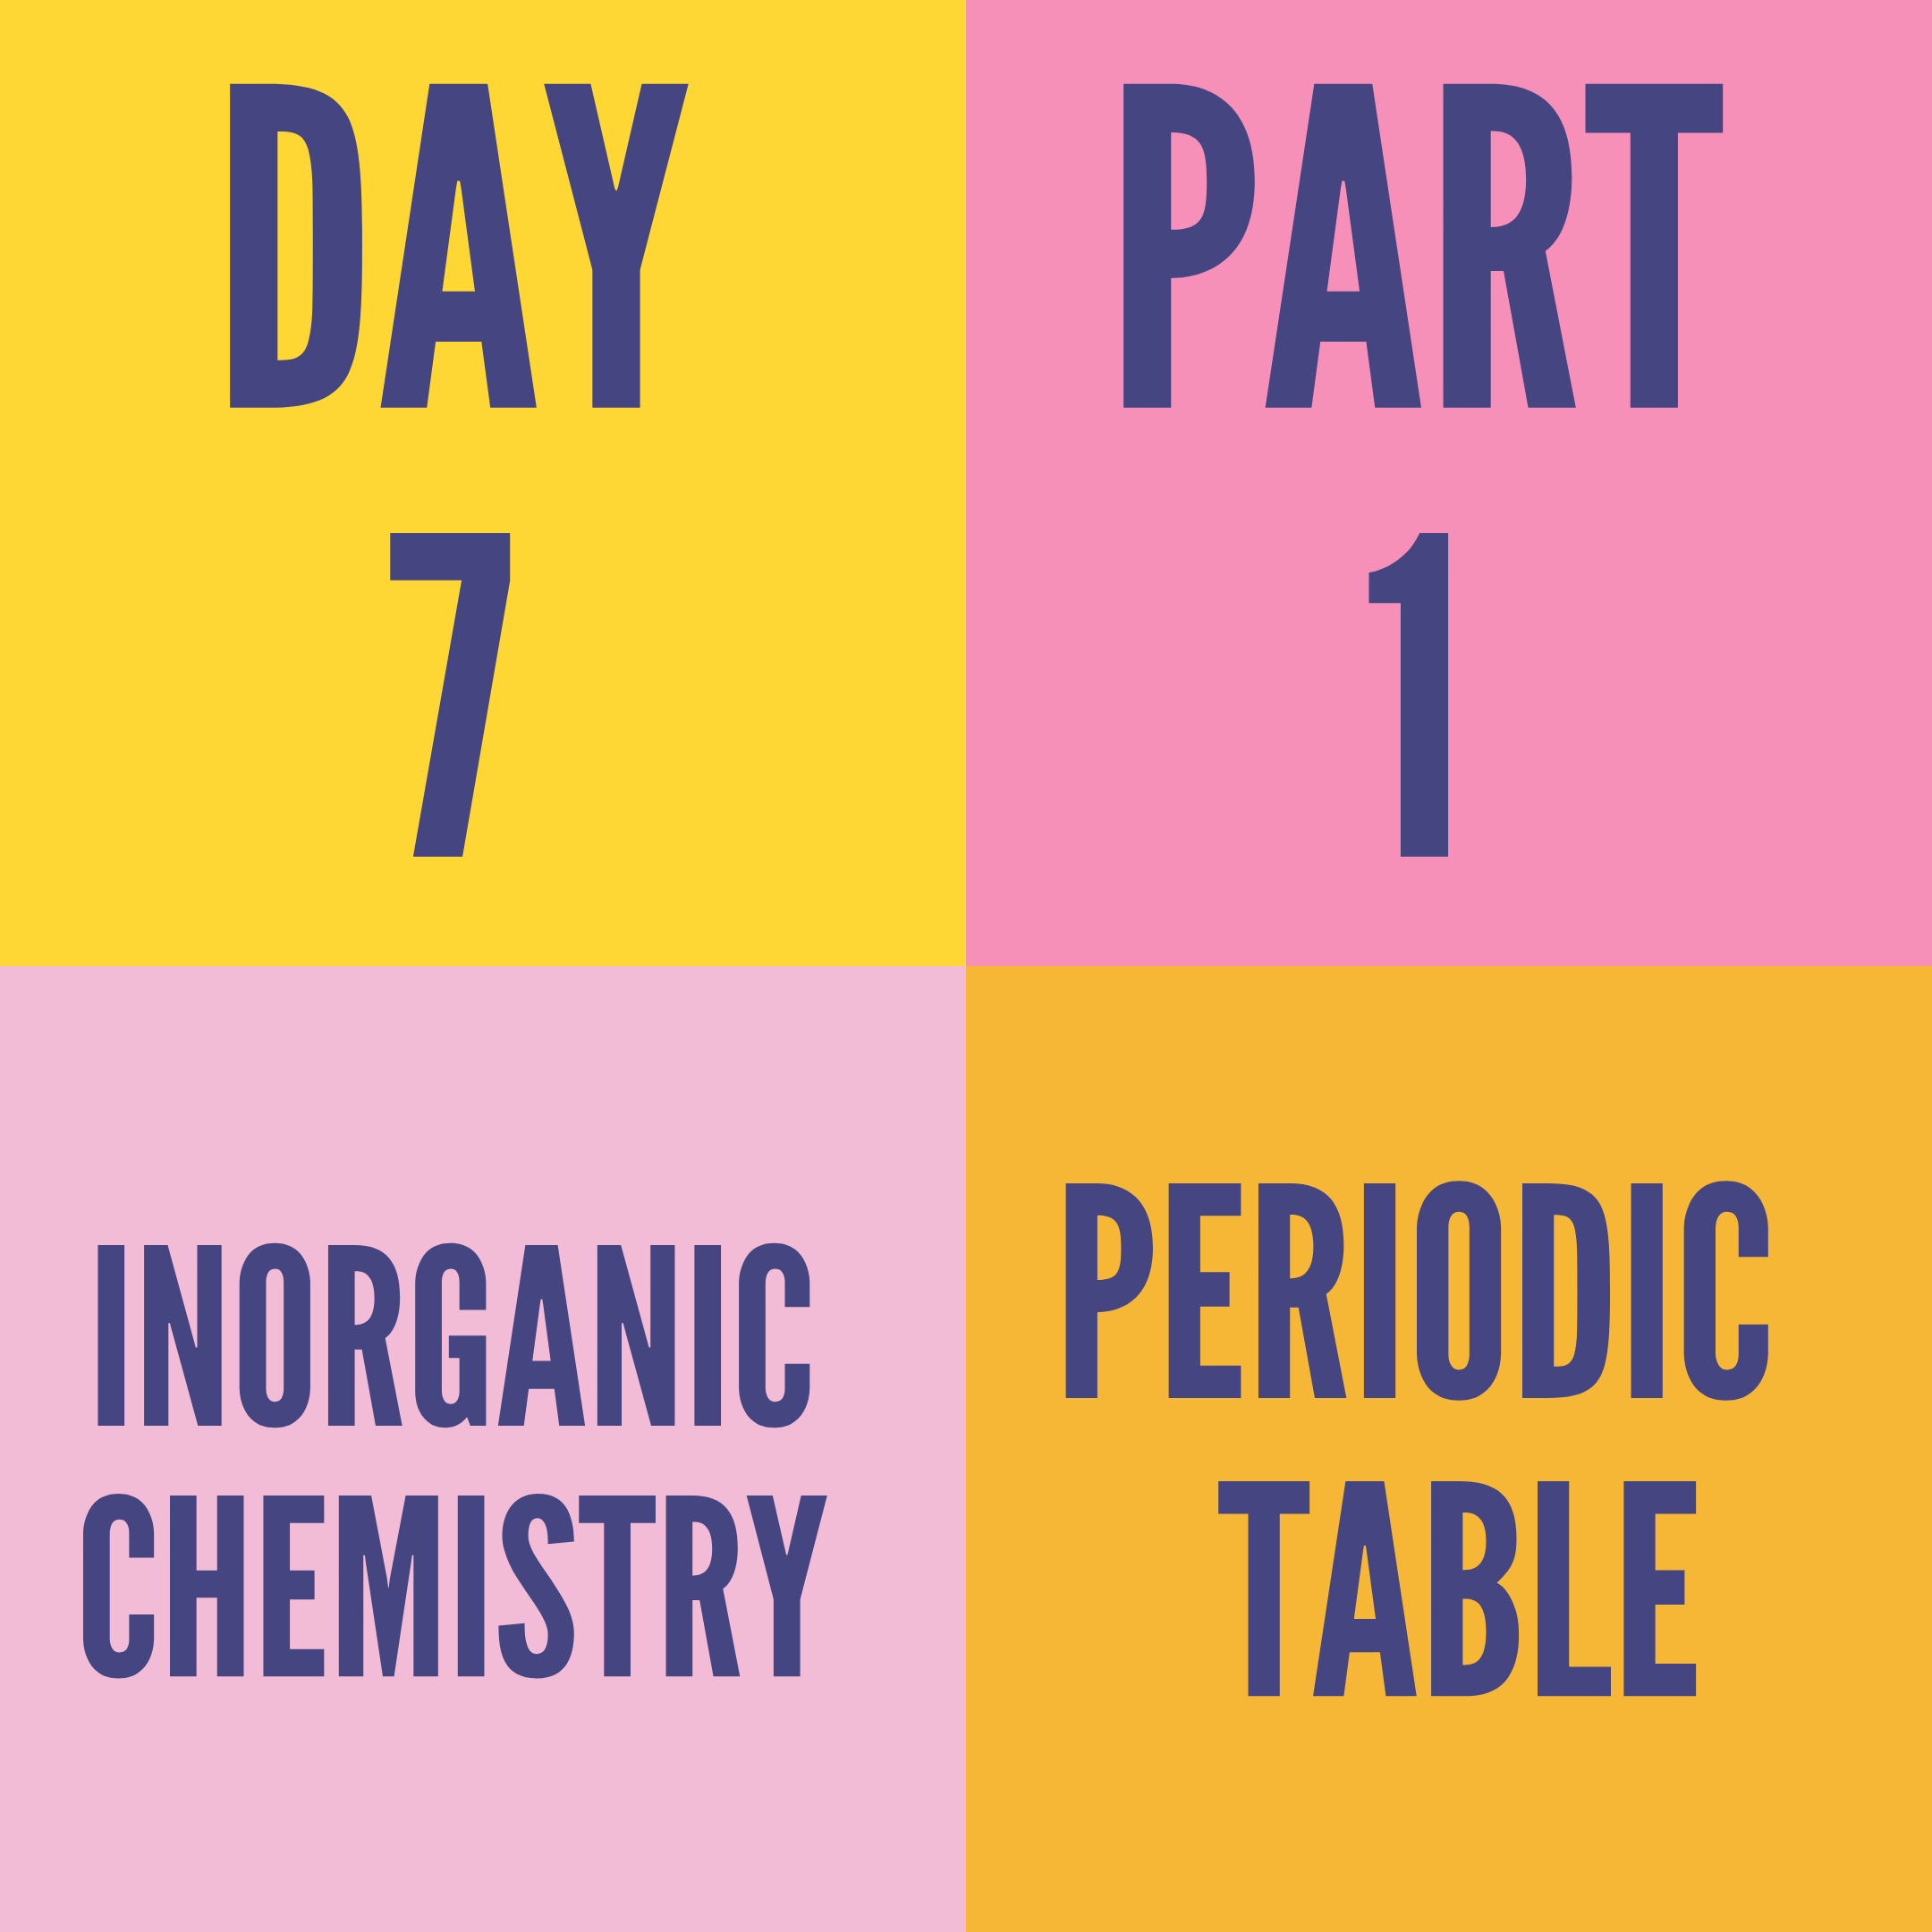 DAY-7 PART-1 PERIODIC TABLE